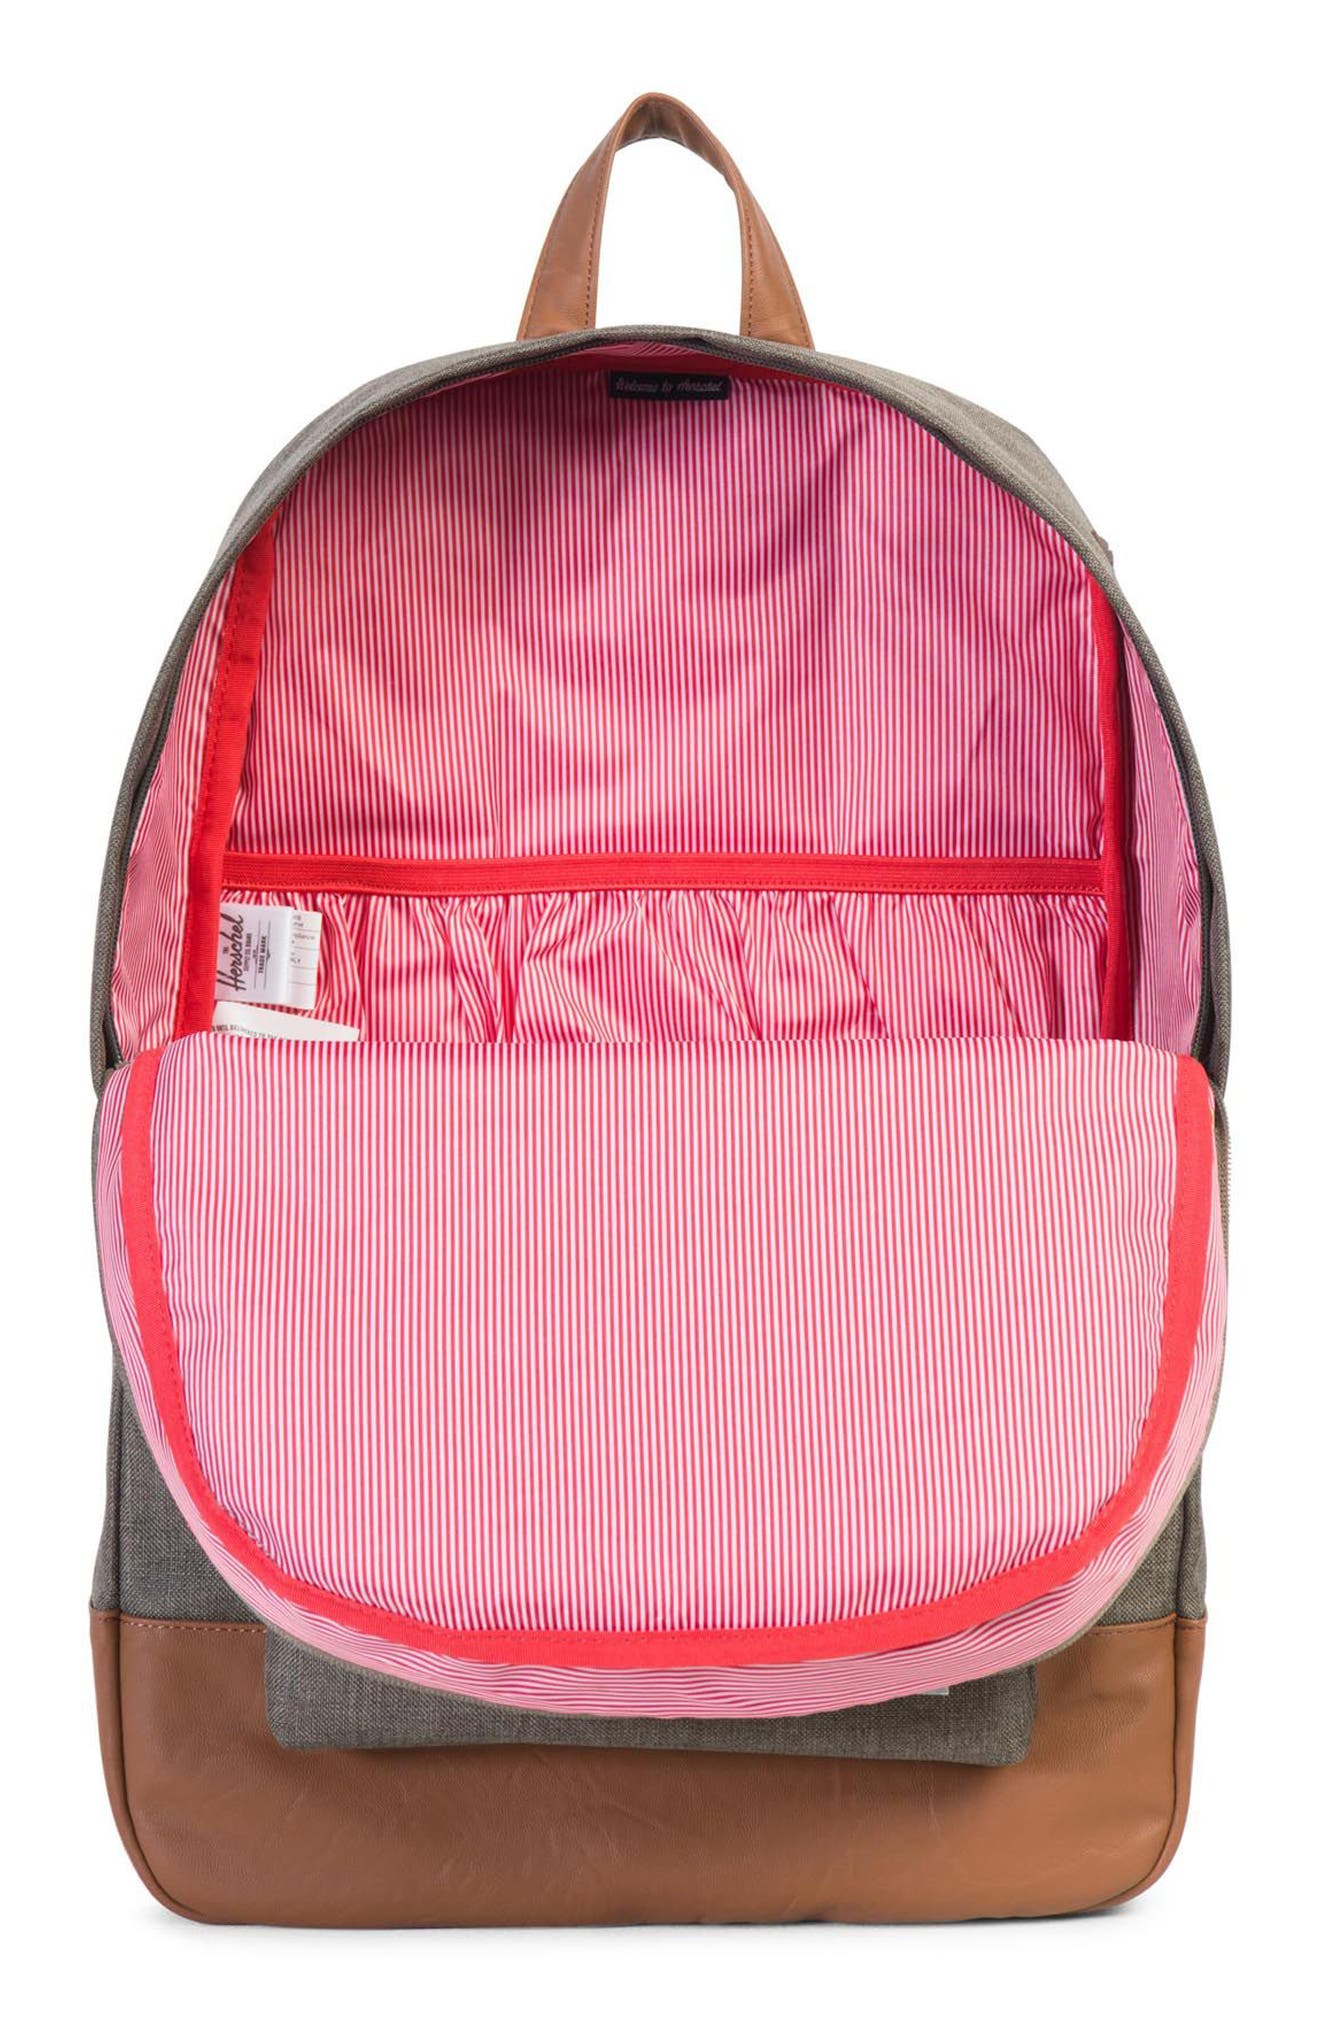 Heritage Backpack,                             Alternate thumbnail 3, color,                             CANTEEN CROSSHATCH/ TAN